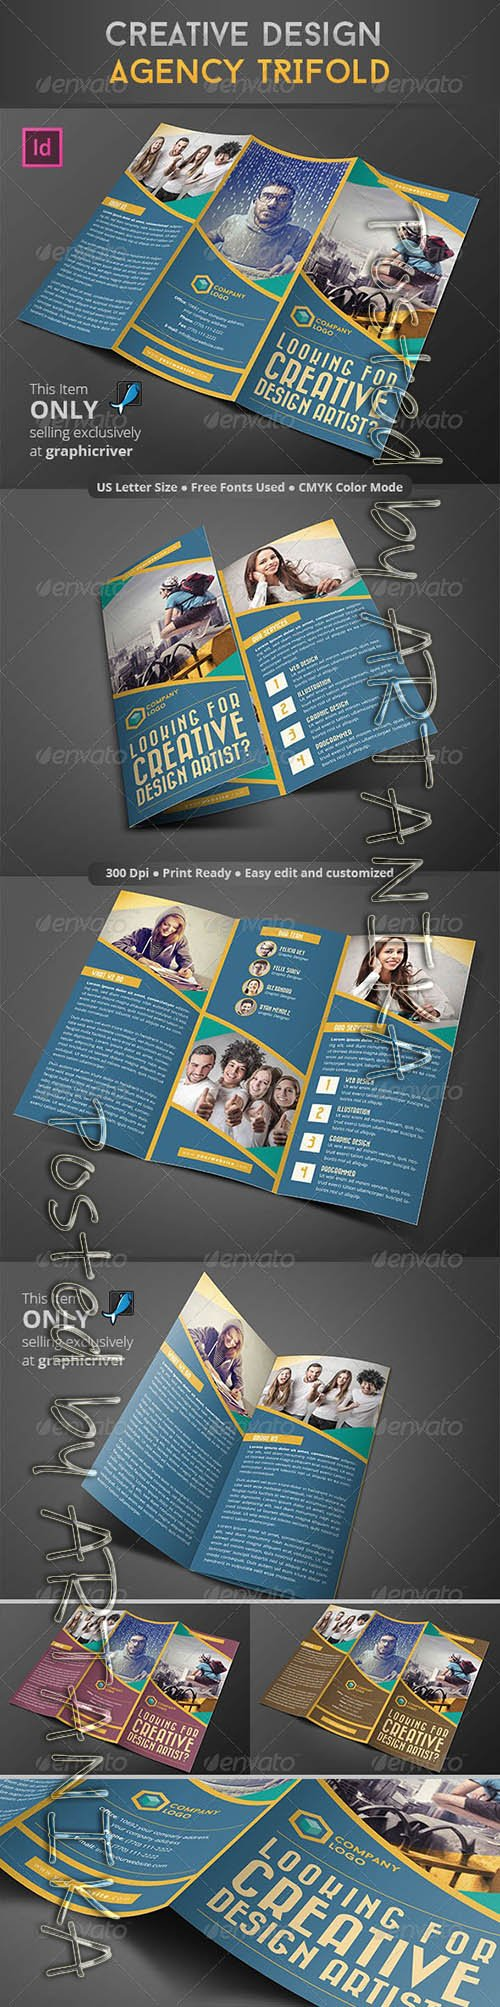 Creative Design Agency Trifold 8756822